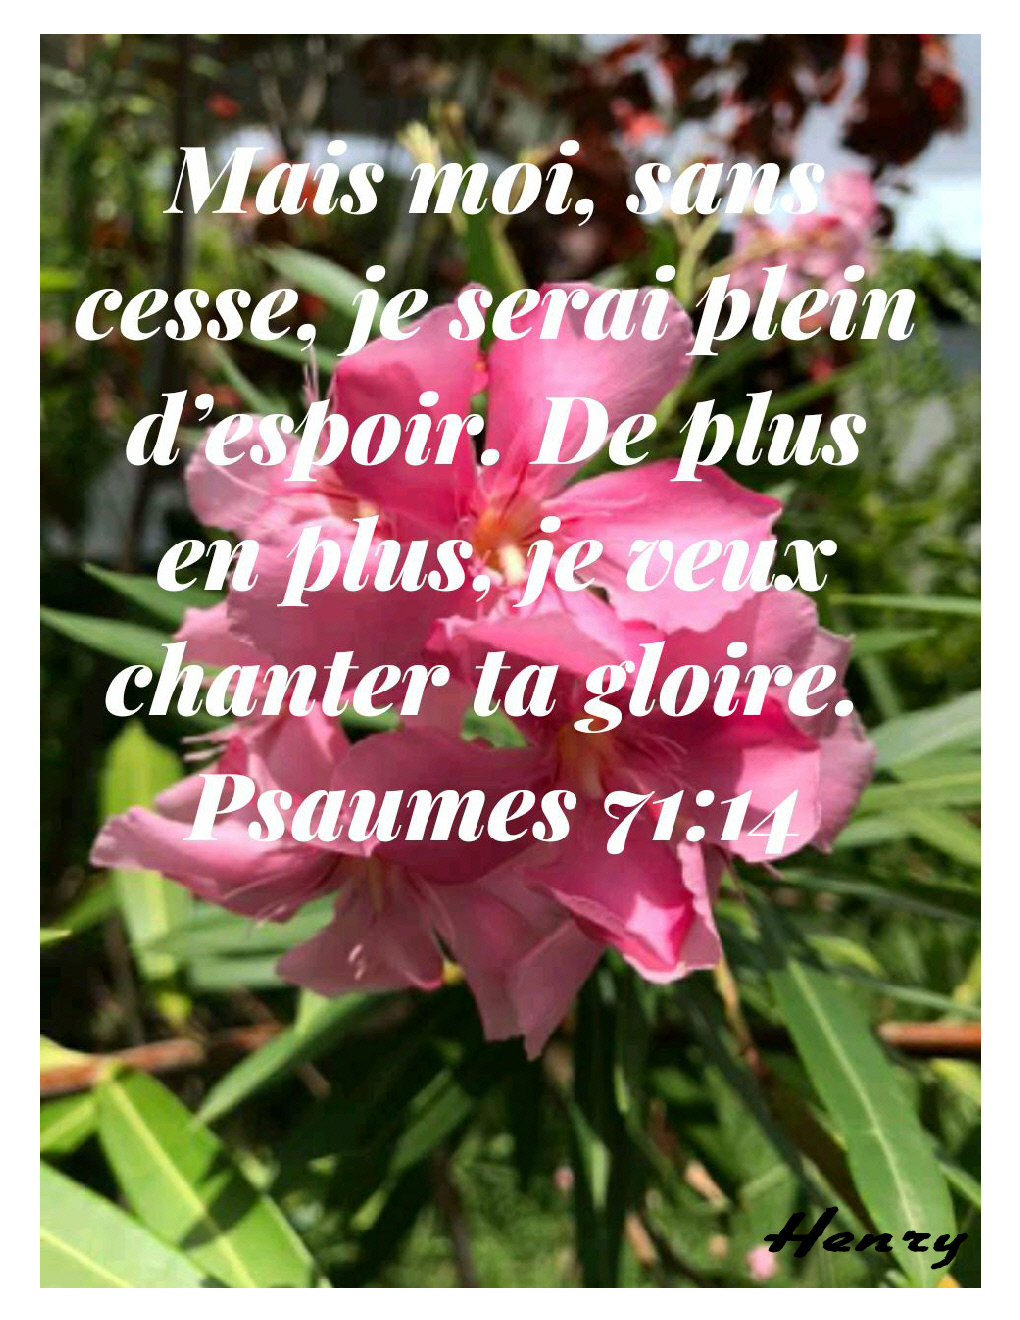 Psaumes 71.14